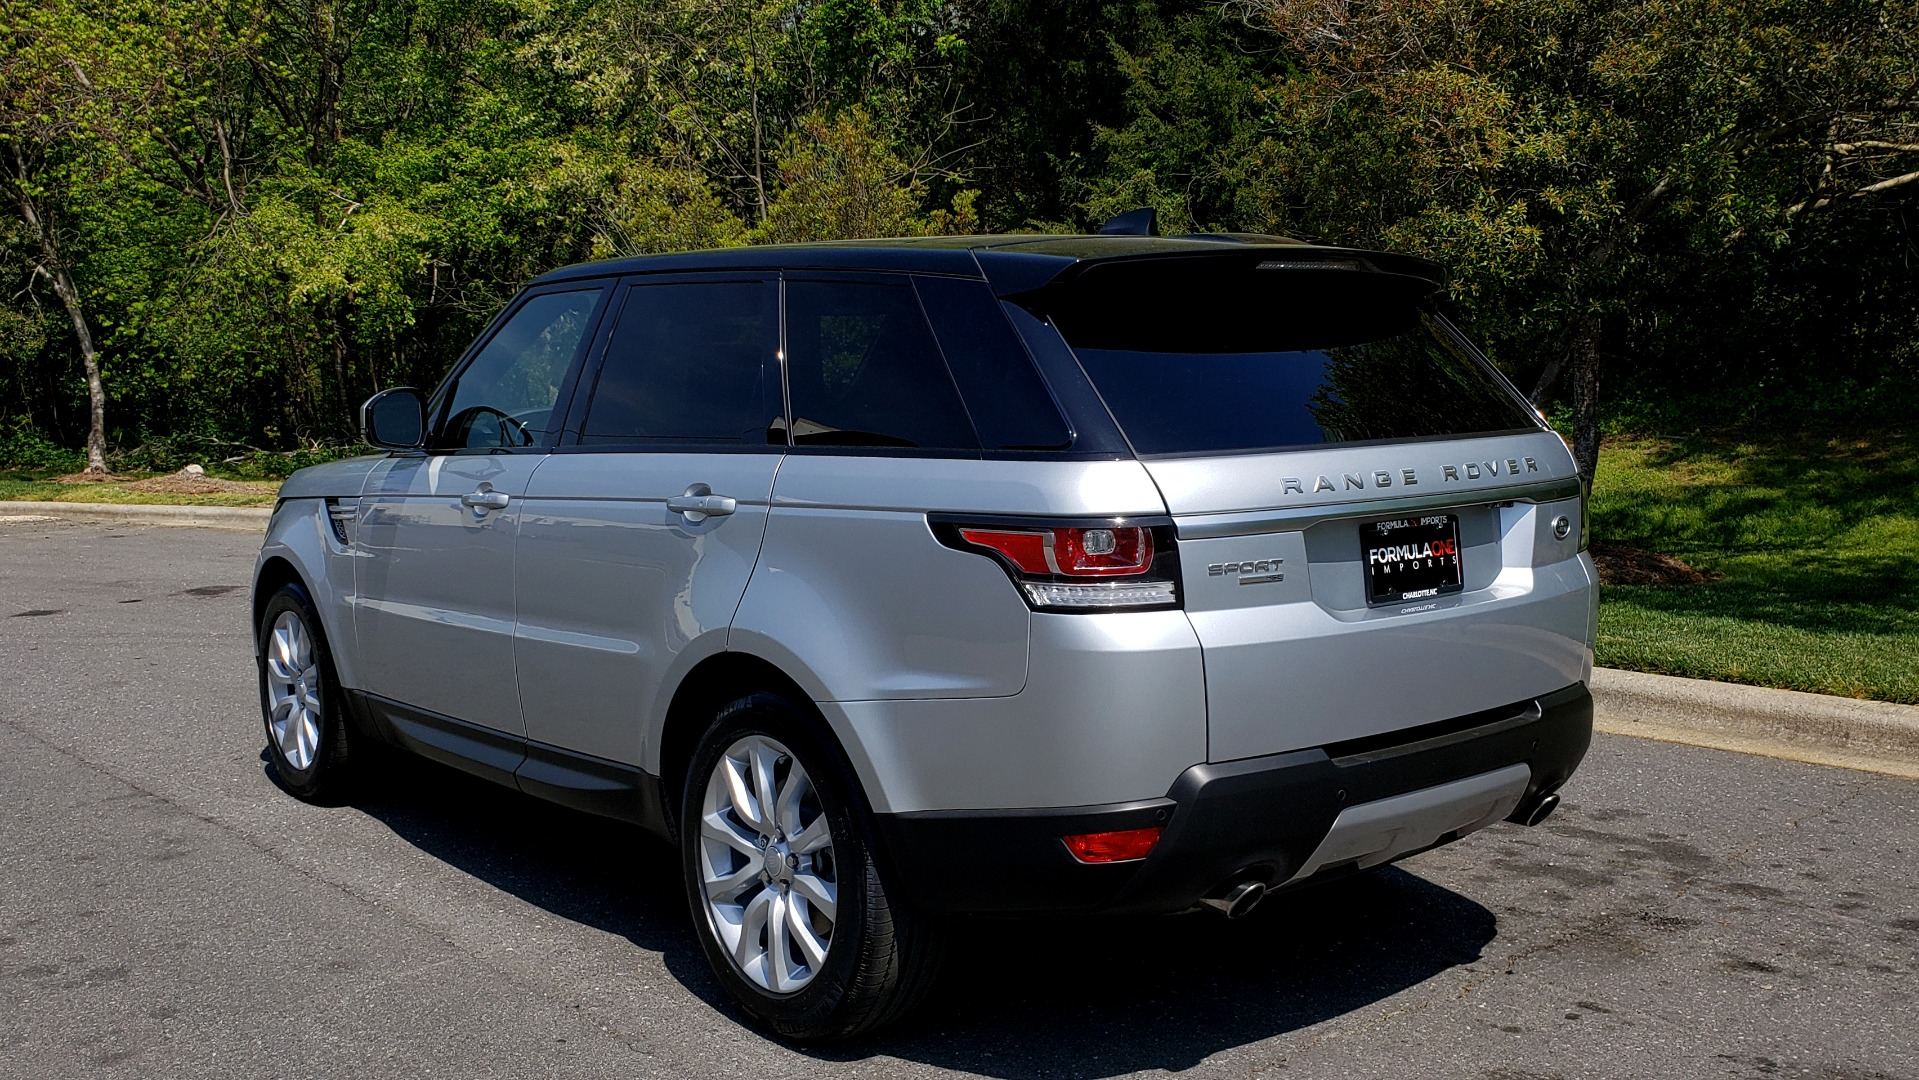 Used 2017 Land Rover RANGE ROVER SPORT HSE / SC V6 / 4X4 / NAV / PANO-ROOF / REARVIEW for sale $43,995 at Formula Imports in Charlotte NC 28227 3